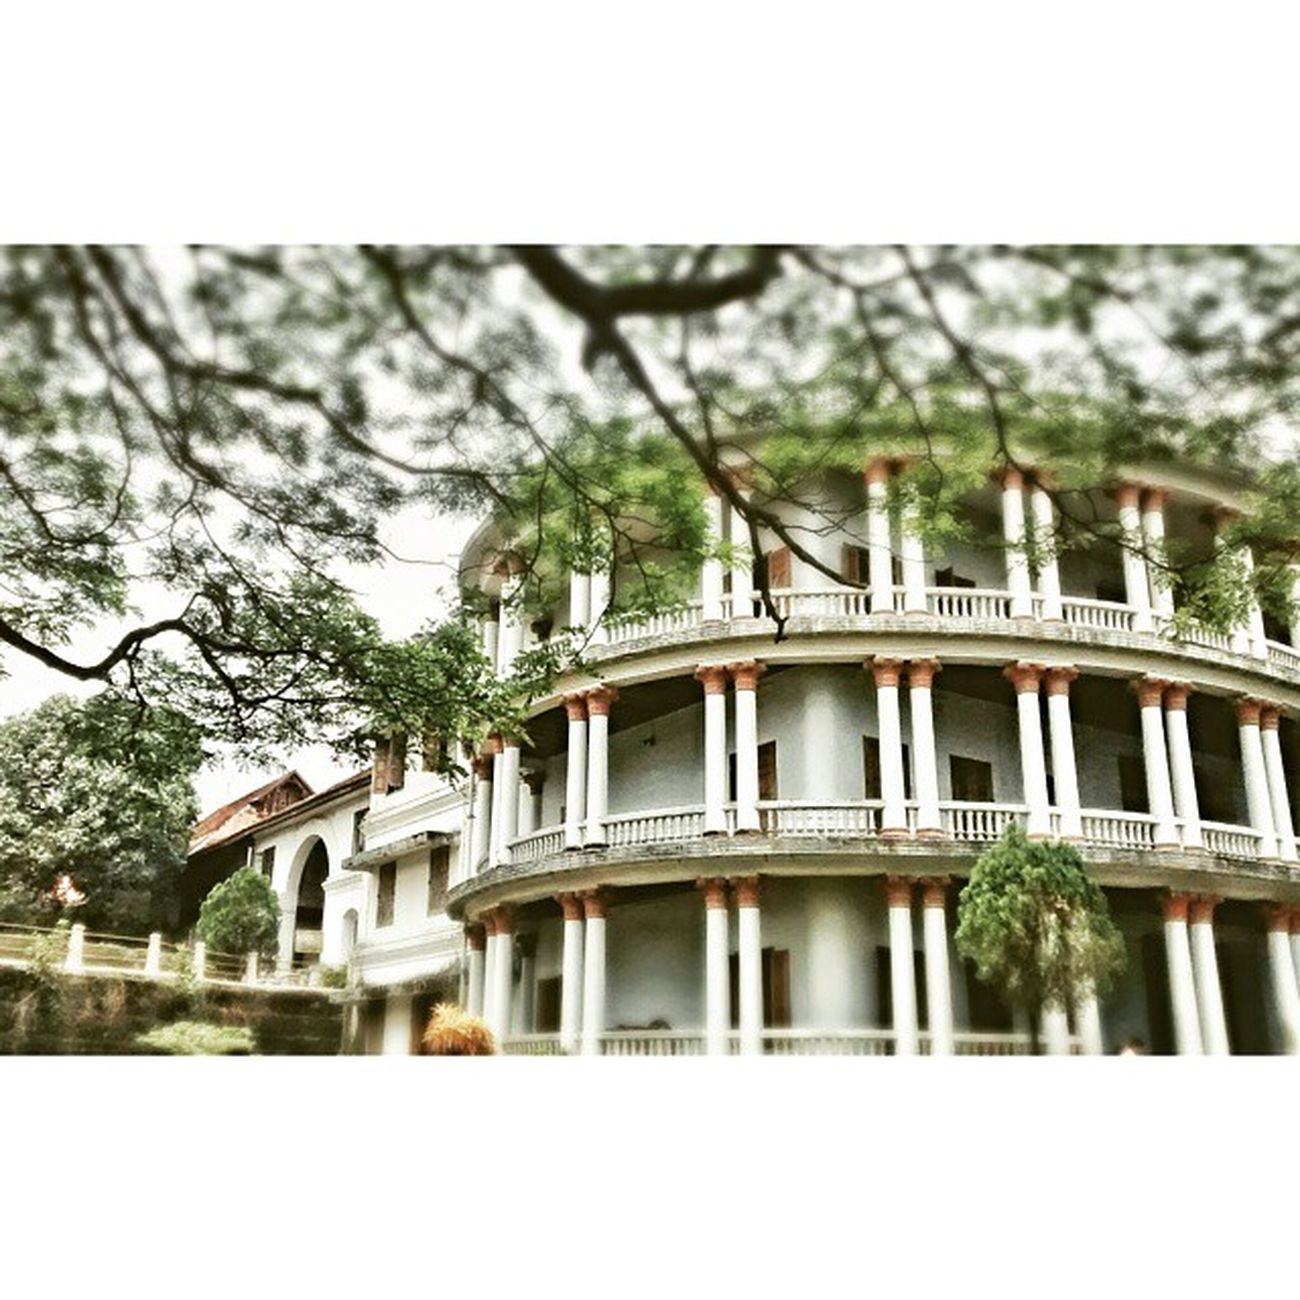 Hill Palace Topspot Bestchair Bestview View Pillars Royalty Democracy Museum Hillpalace Thripunithra Hillpalacemuseum Ernakulam Motog